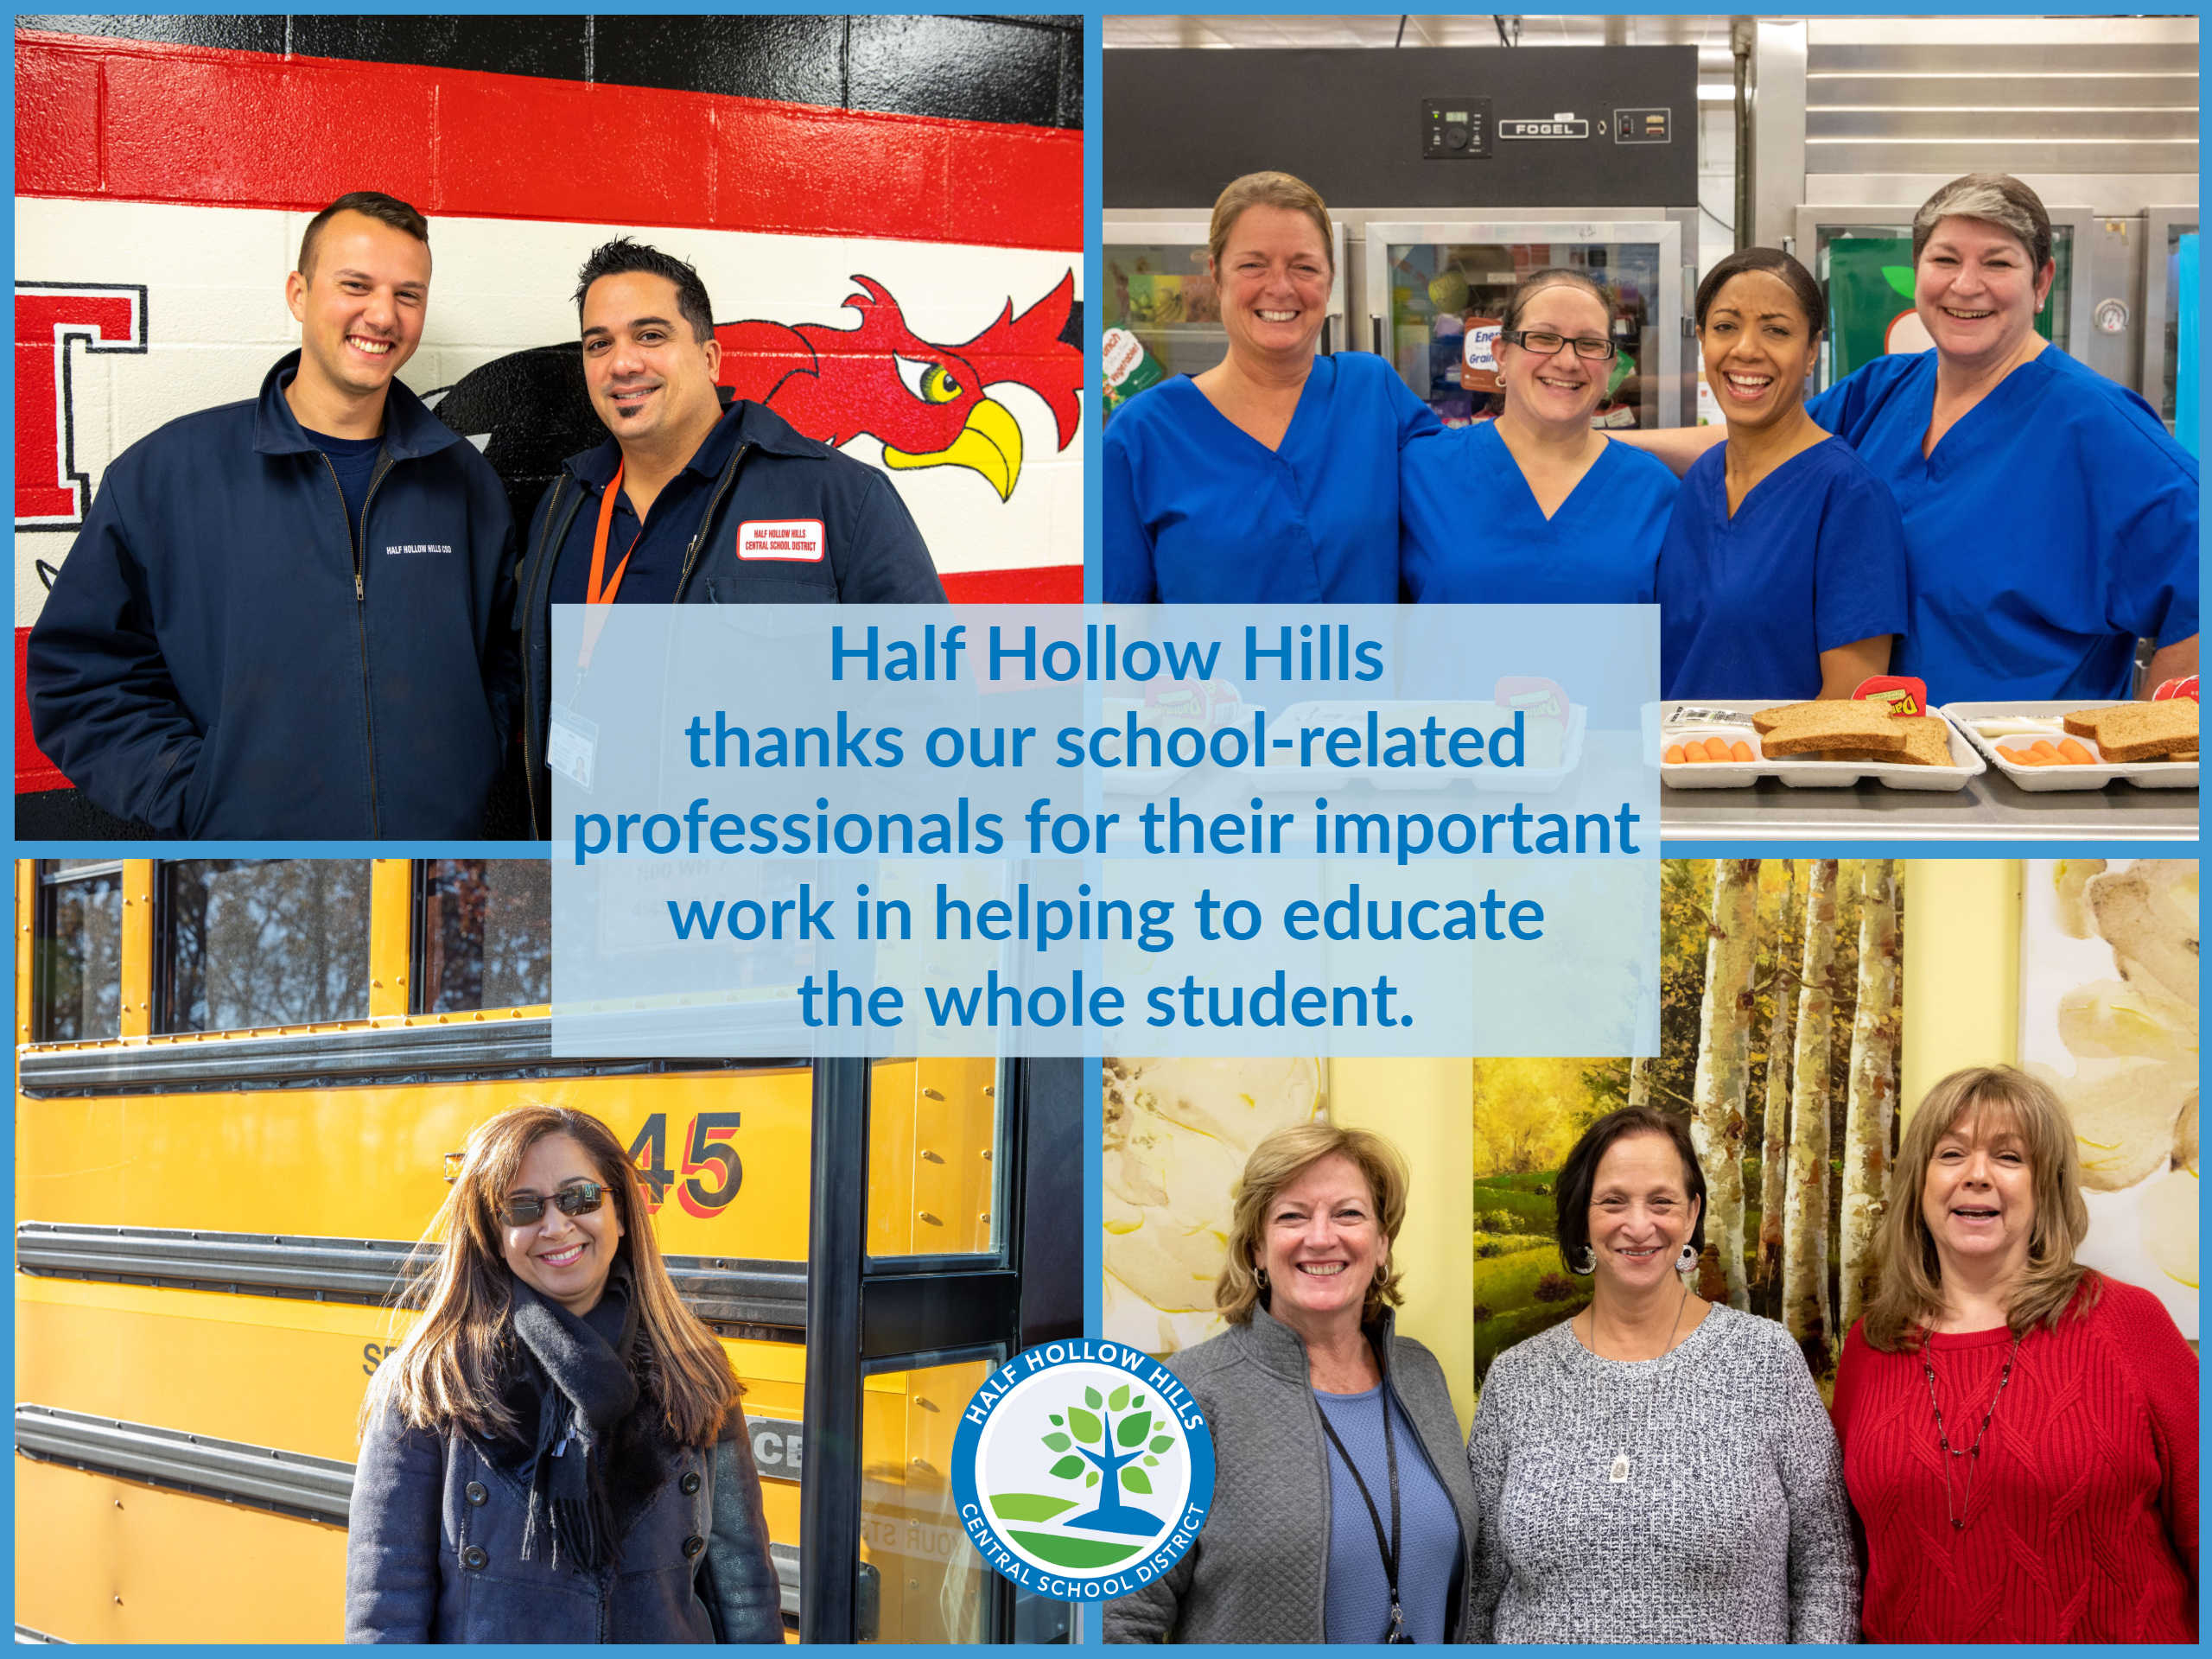 Half Hollow Hills Thanks Our School-Related Professionals